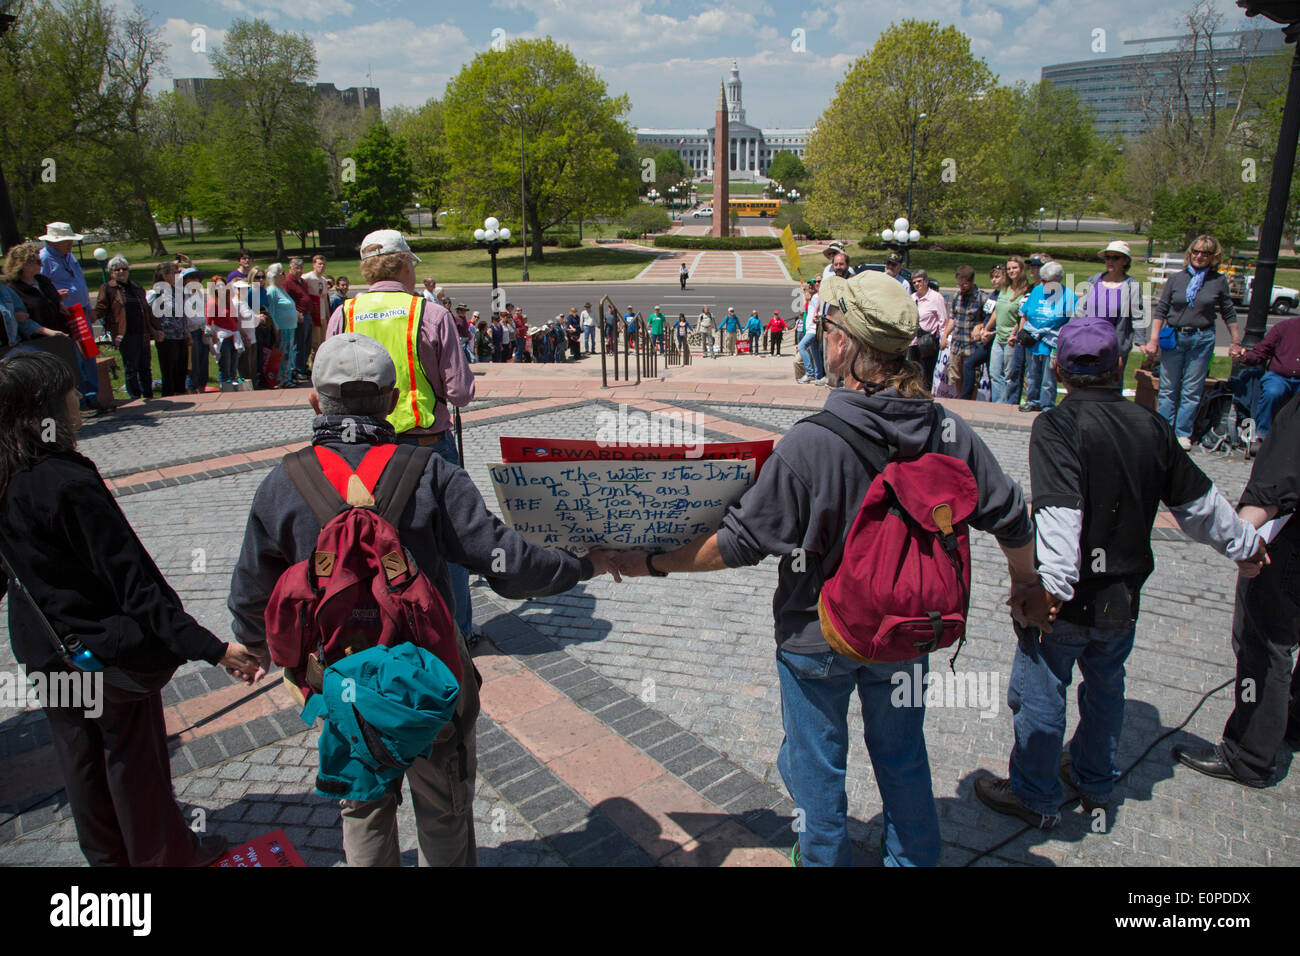 Denver, Colorado. Environmentalists rally at the Colorado state capitol to oppose the planned Keystone XL pipeline, Stock Photo